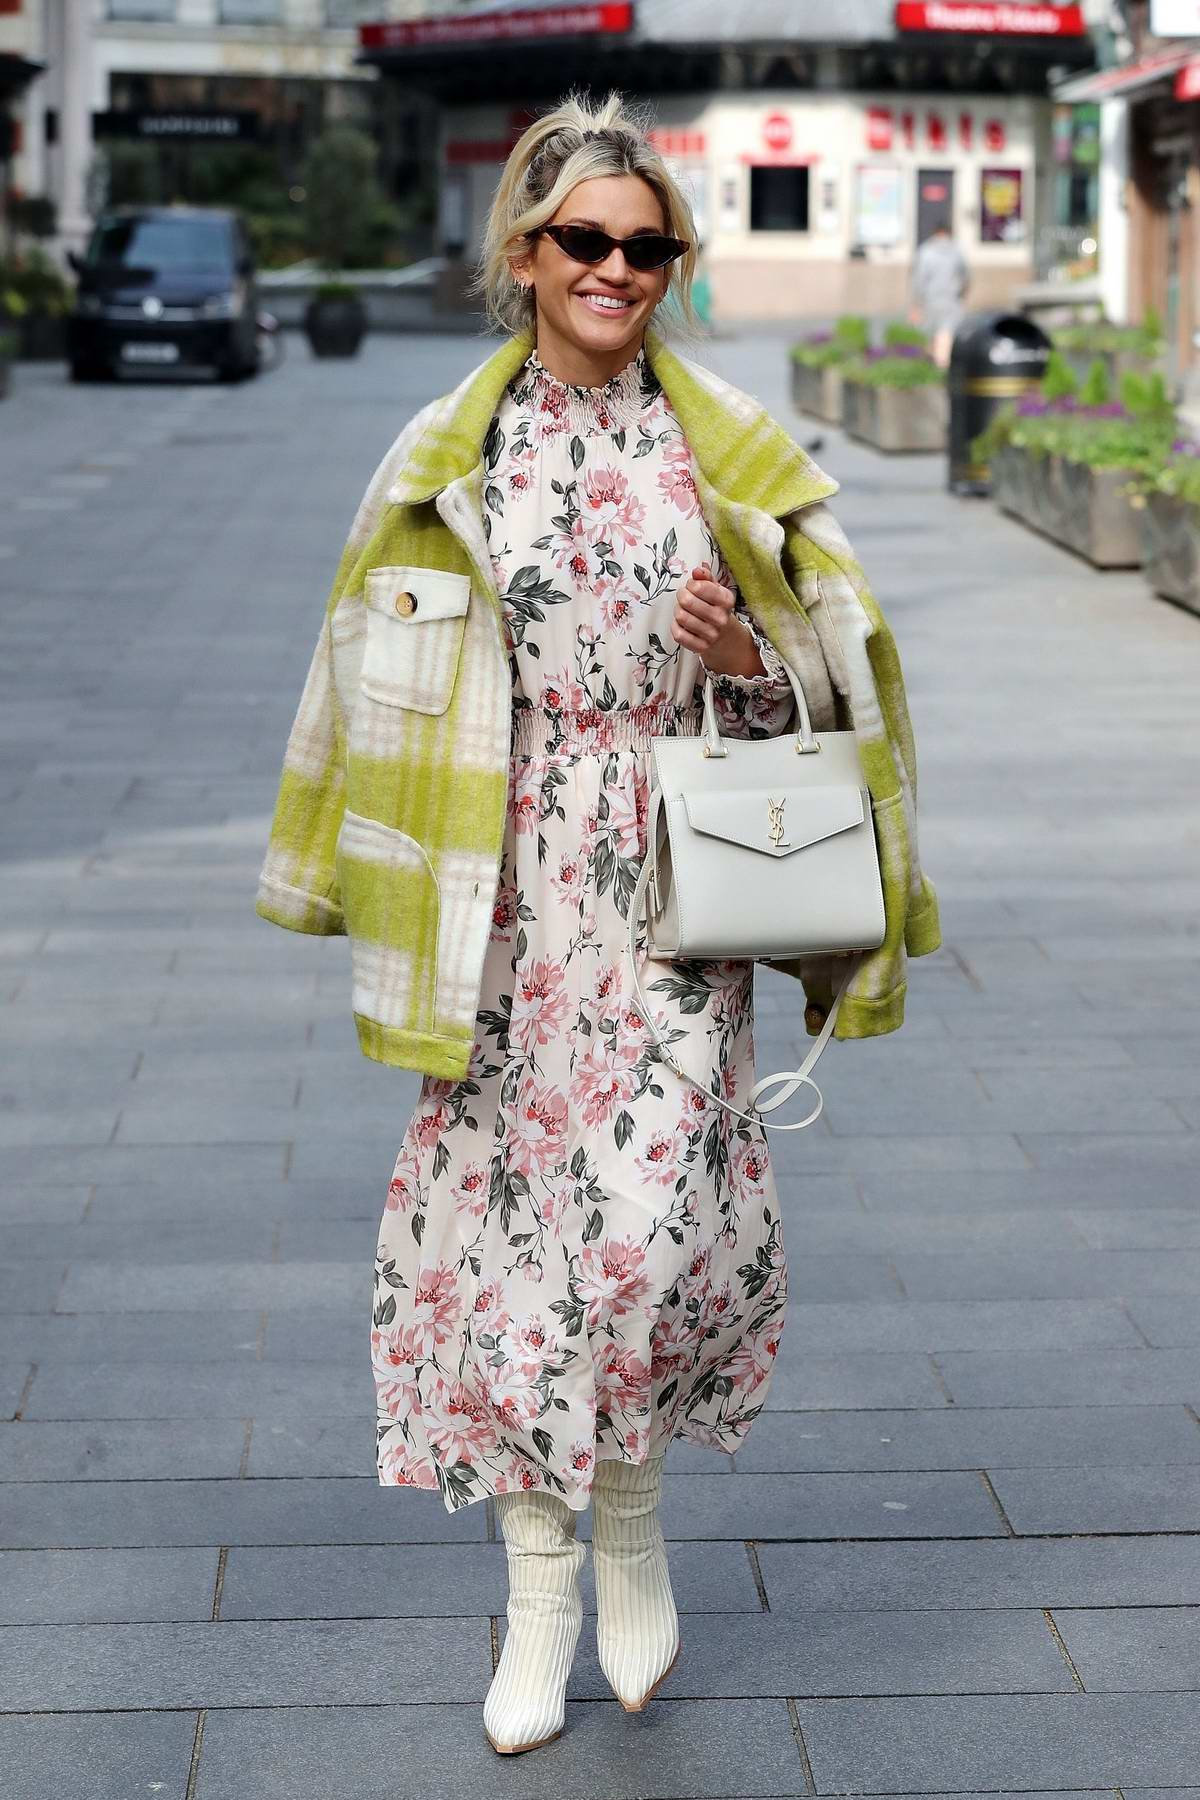 Ashley Roberts looks pretty in a floral print dress as she leaves the Global studios in London, UK